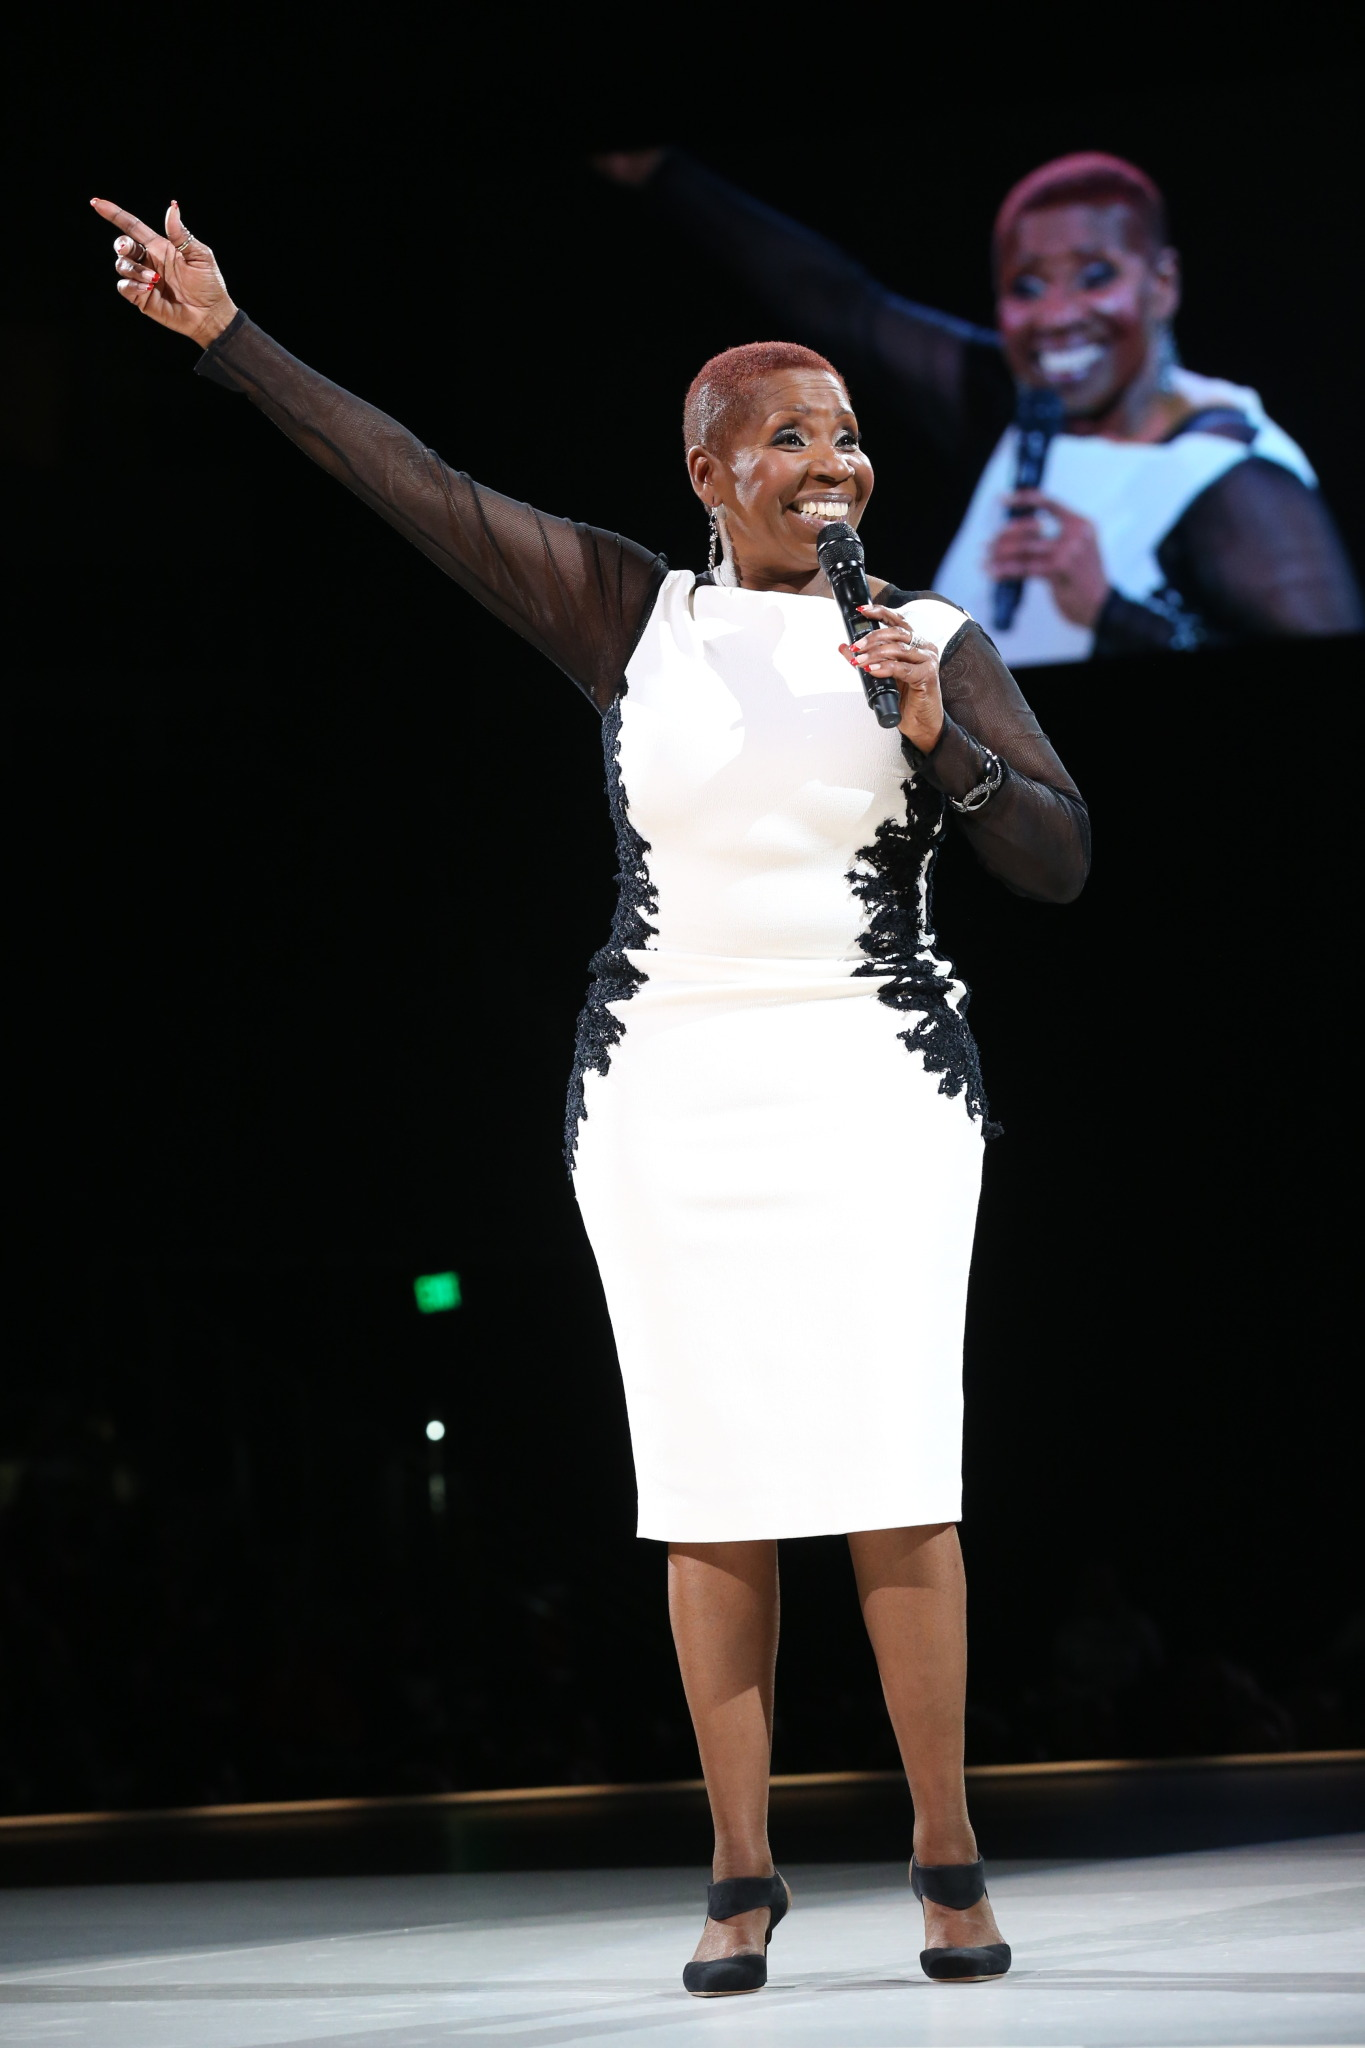 Iyanla Vanzant in seattle pic